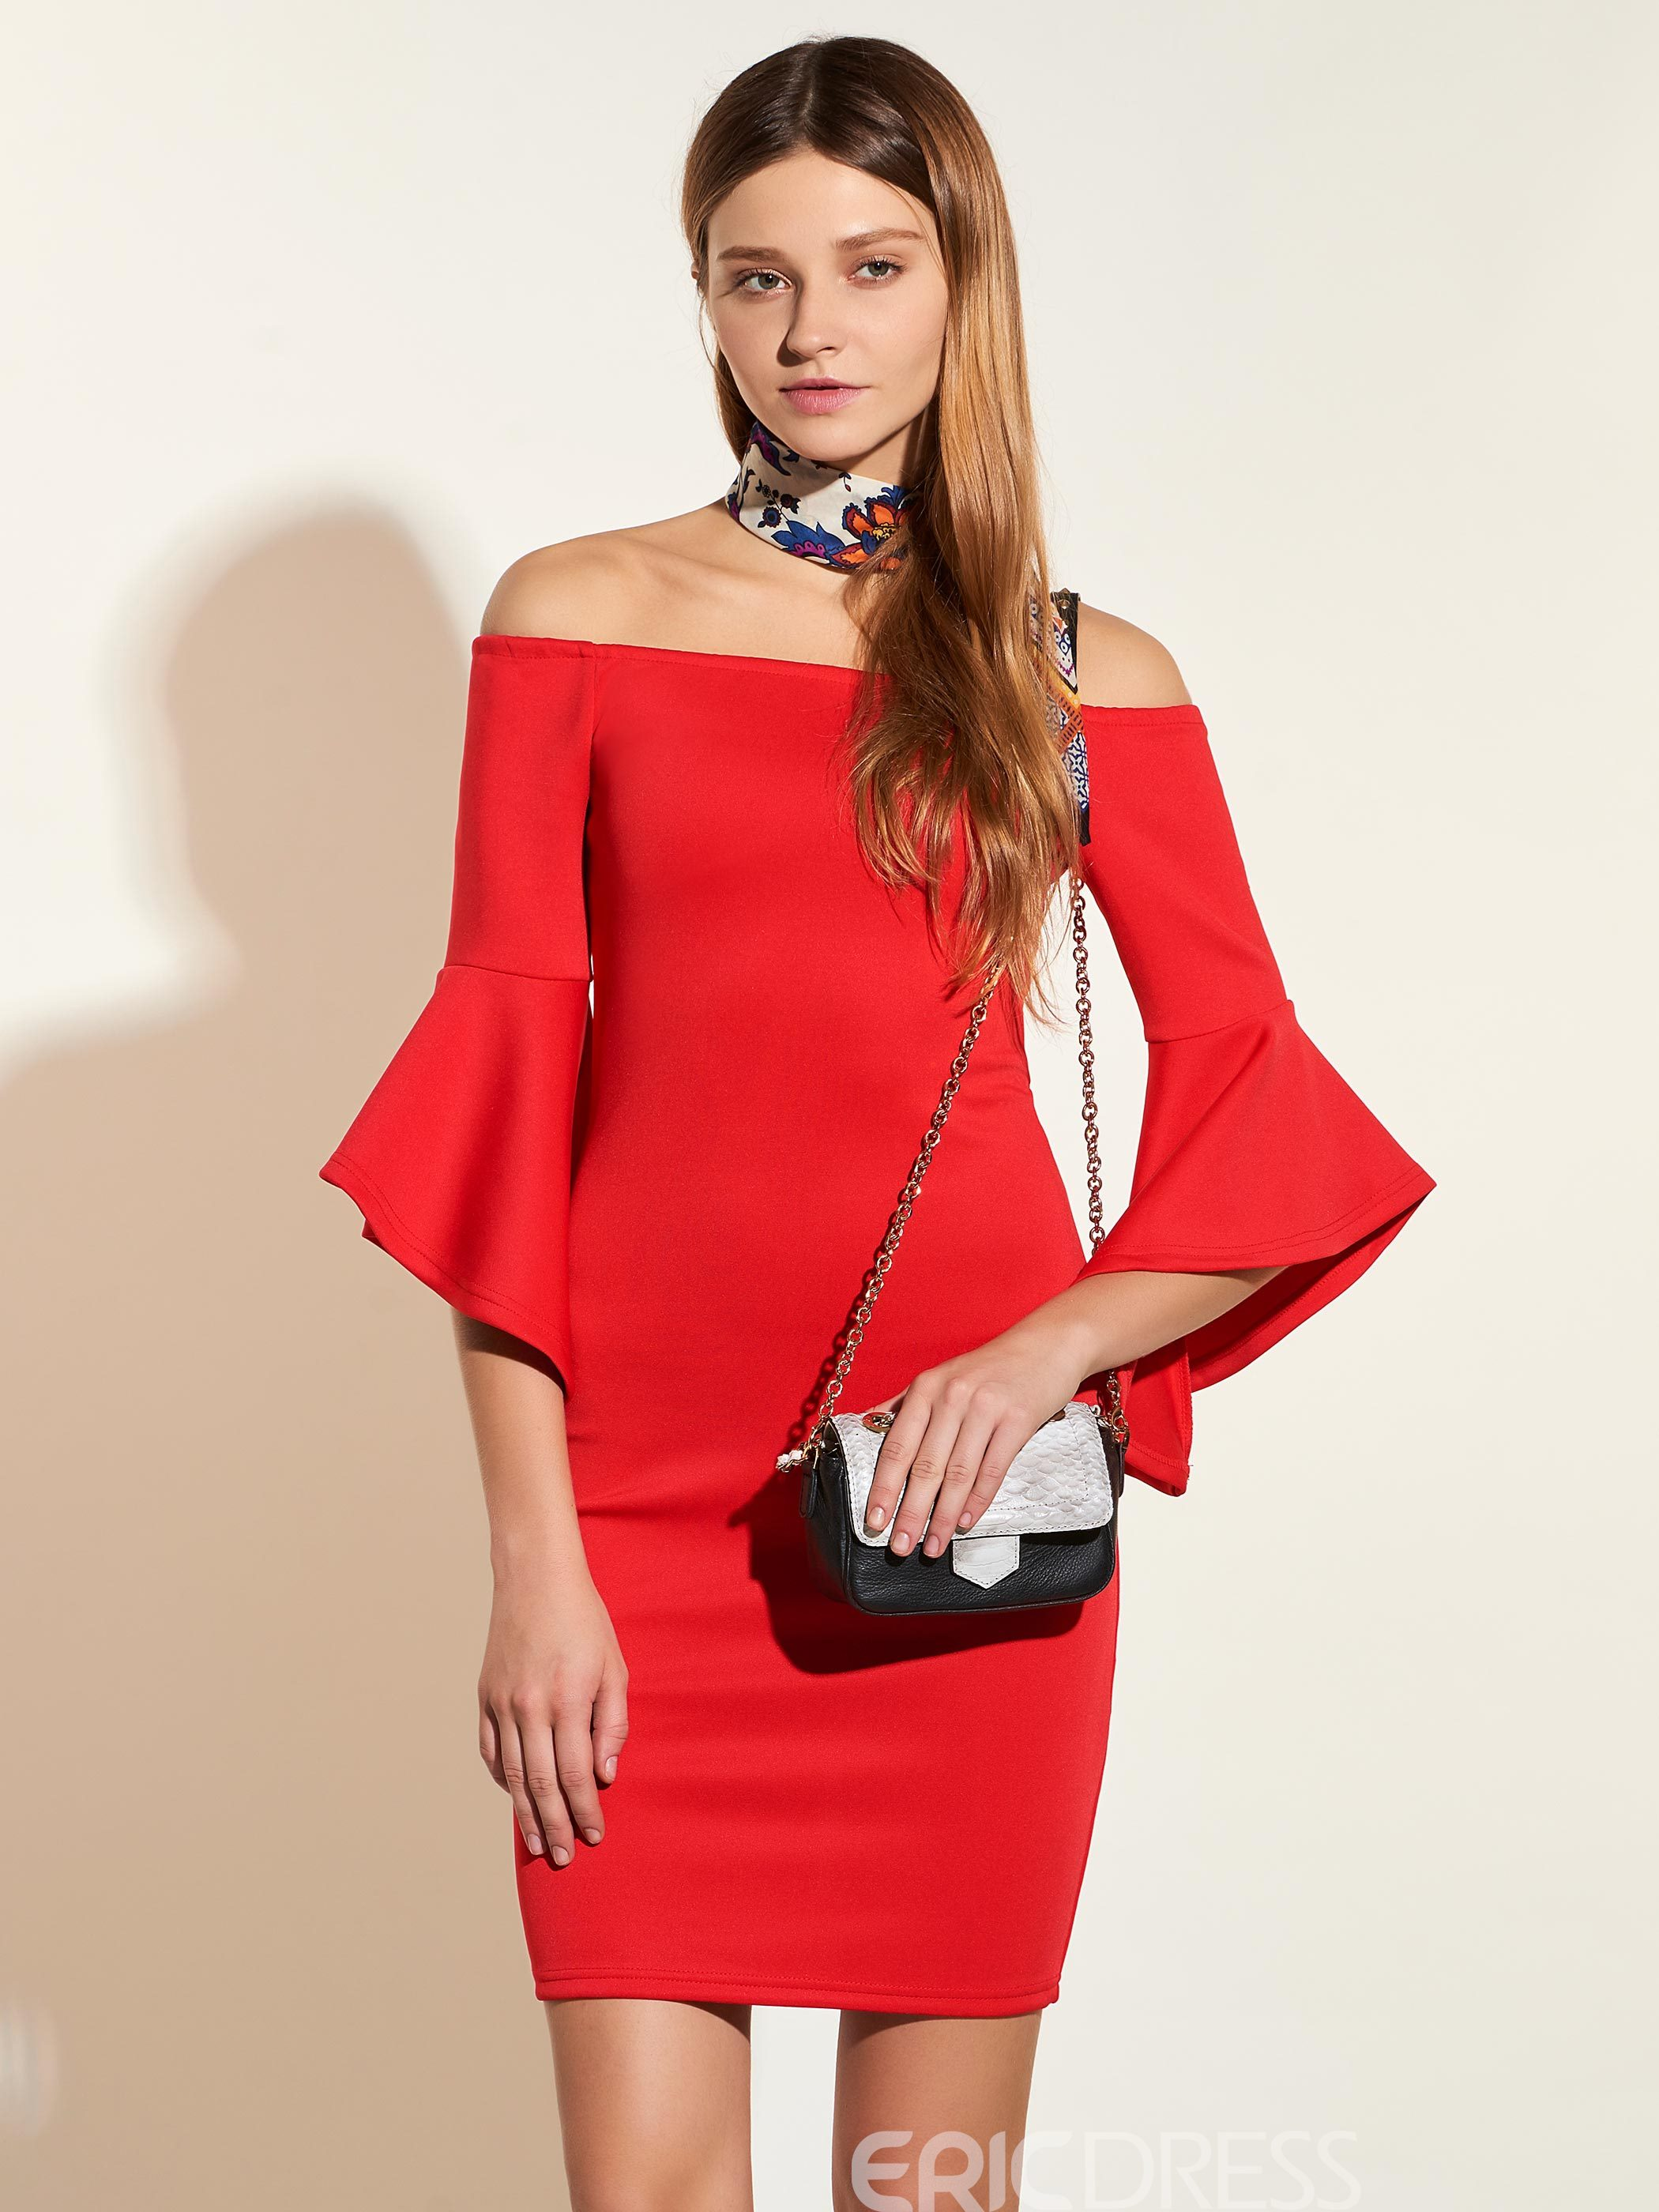 Ericdress Off-the-Shoulder Bell Sleeve Bodycon Dress 12782459